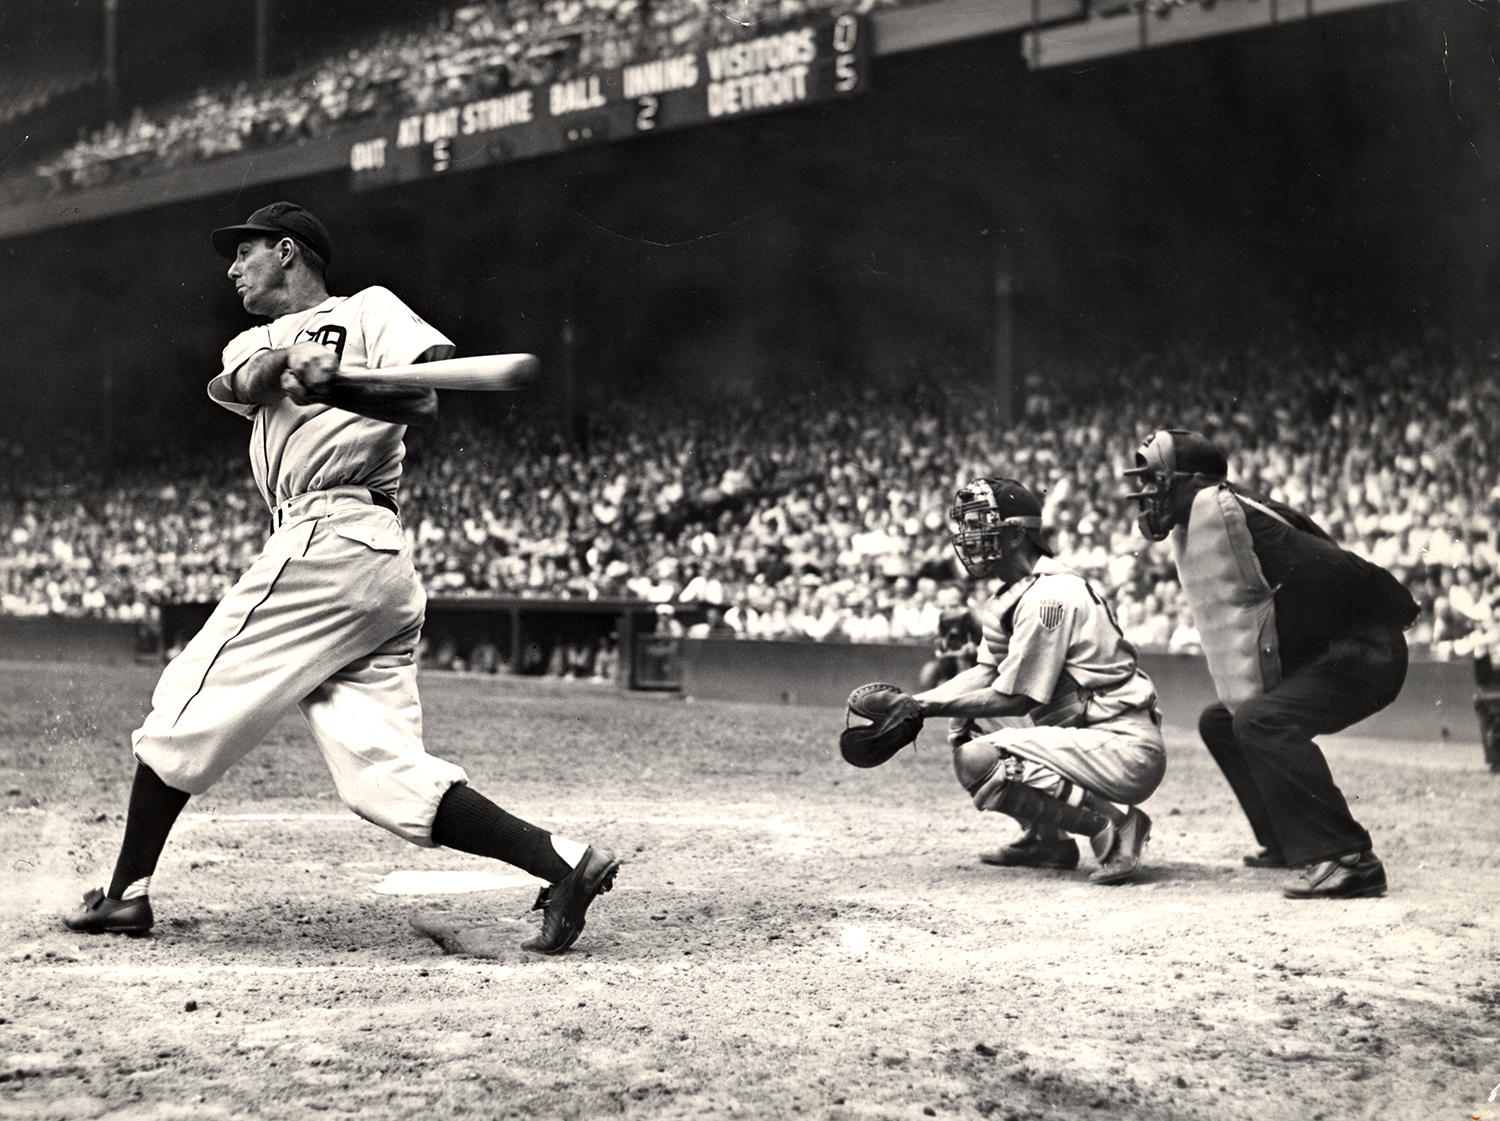 In 1940, the same year Hank Greenberg transitioned from playing at first base to left field, he won the AL MVP Award,  hitting 41 home runs and 50 doubles while driving in 150 runs. (National Baseball Hall of Fame)